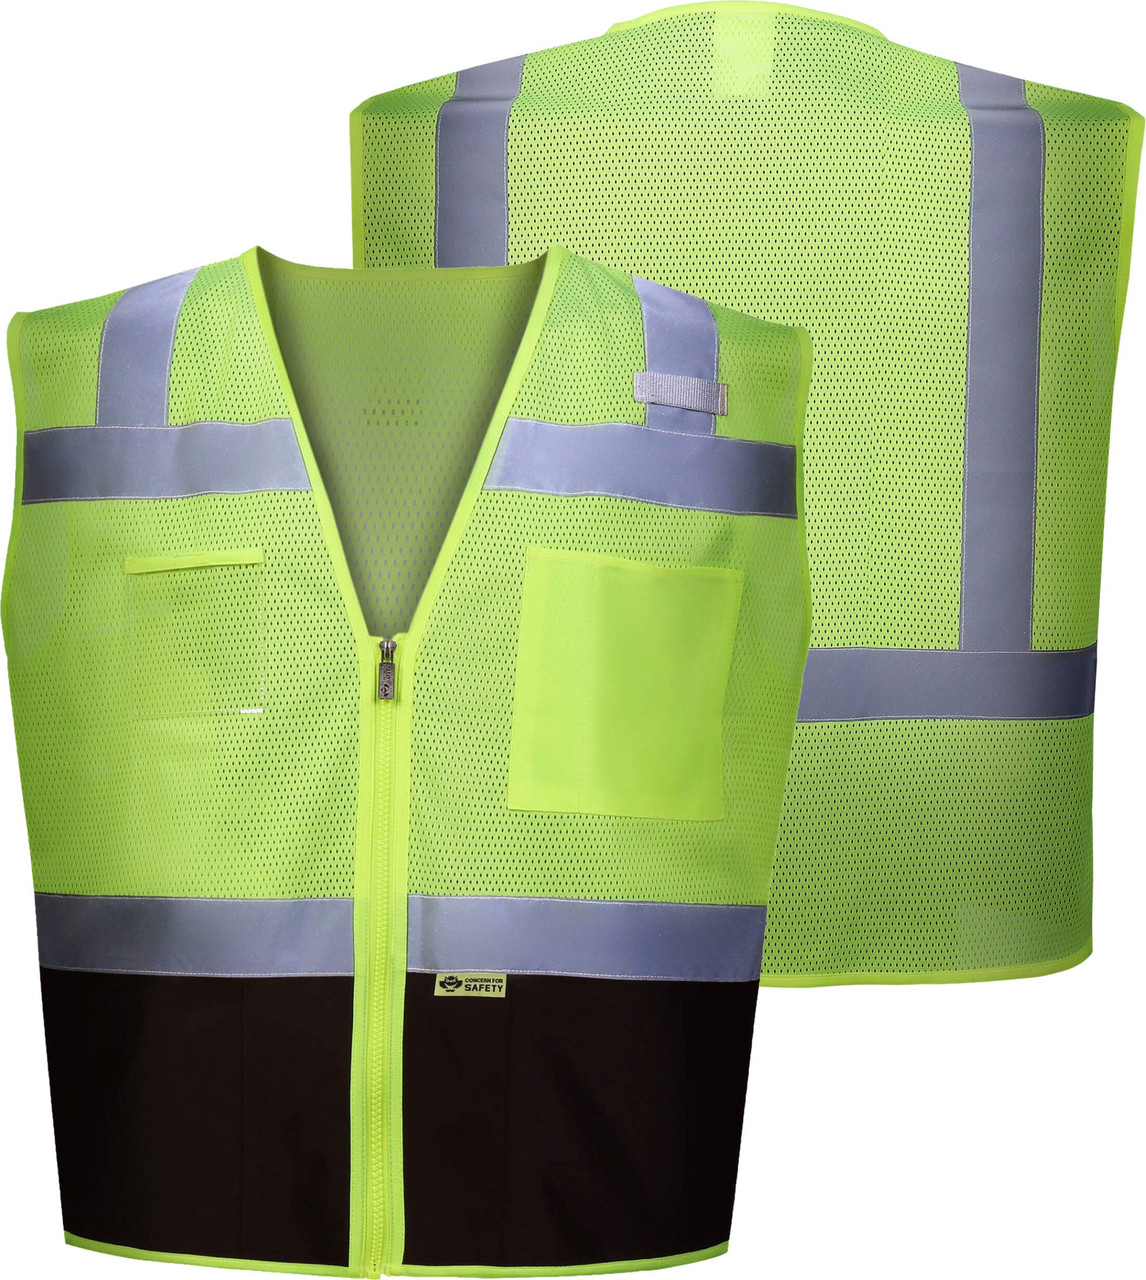 Black Bottom Class 2 Safety Vest | ANSI Class 2 Two tone Safety Vest | Black Zipper front Safety Vest | Lime/Black Reflective Vest